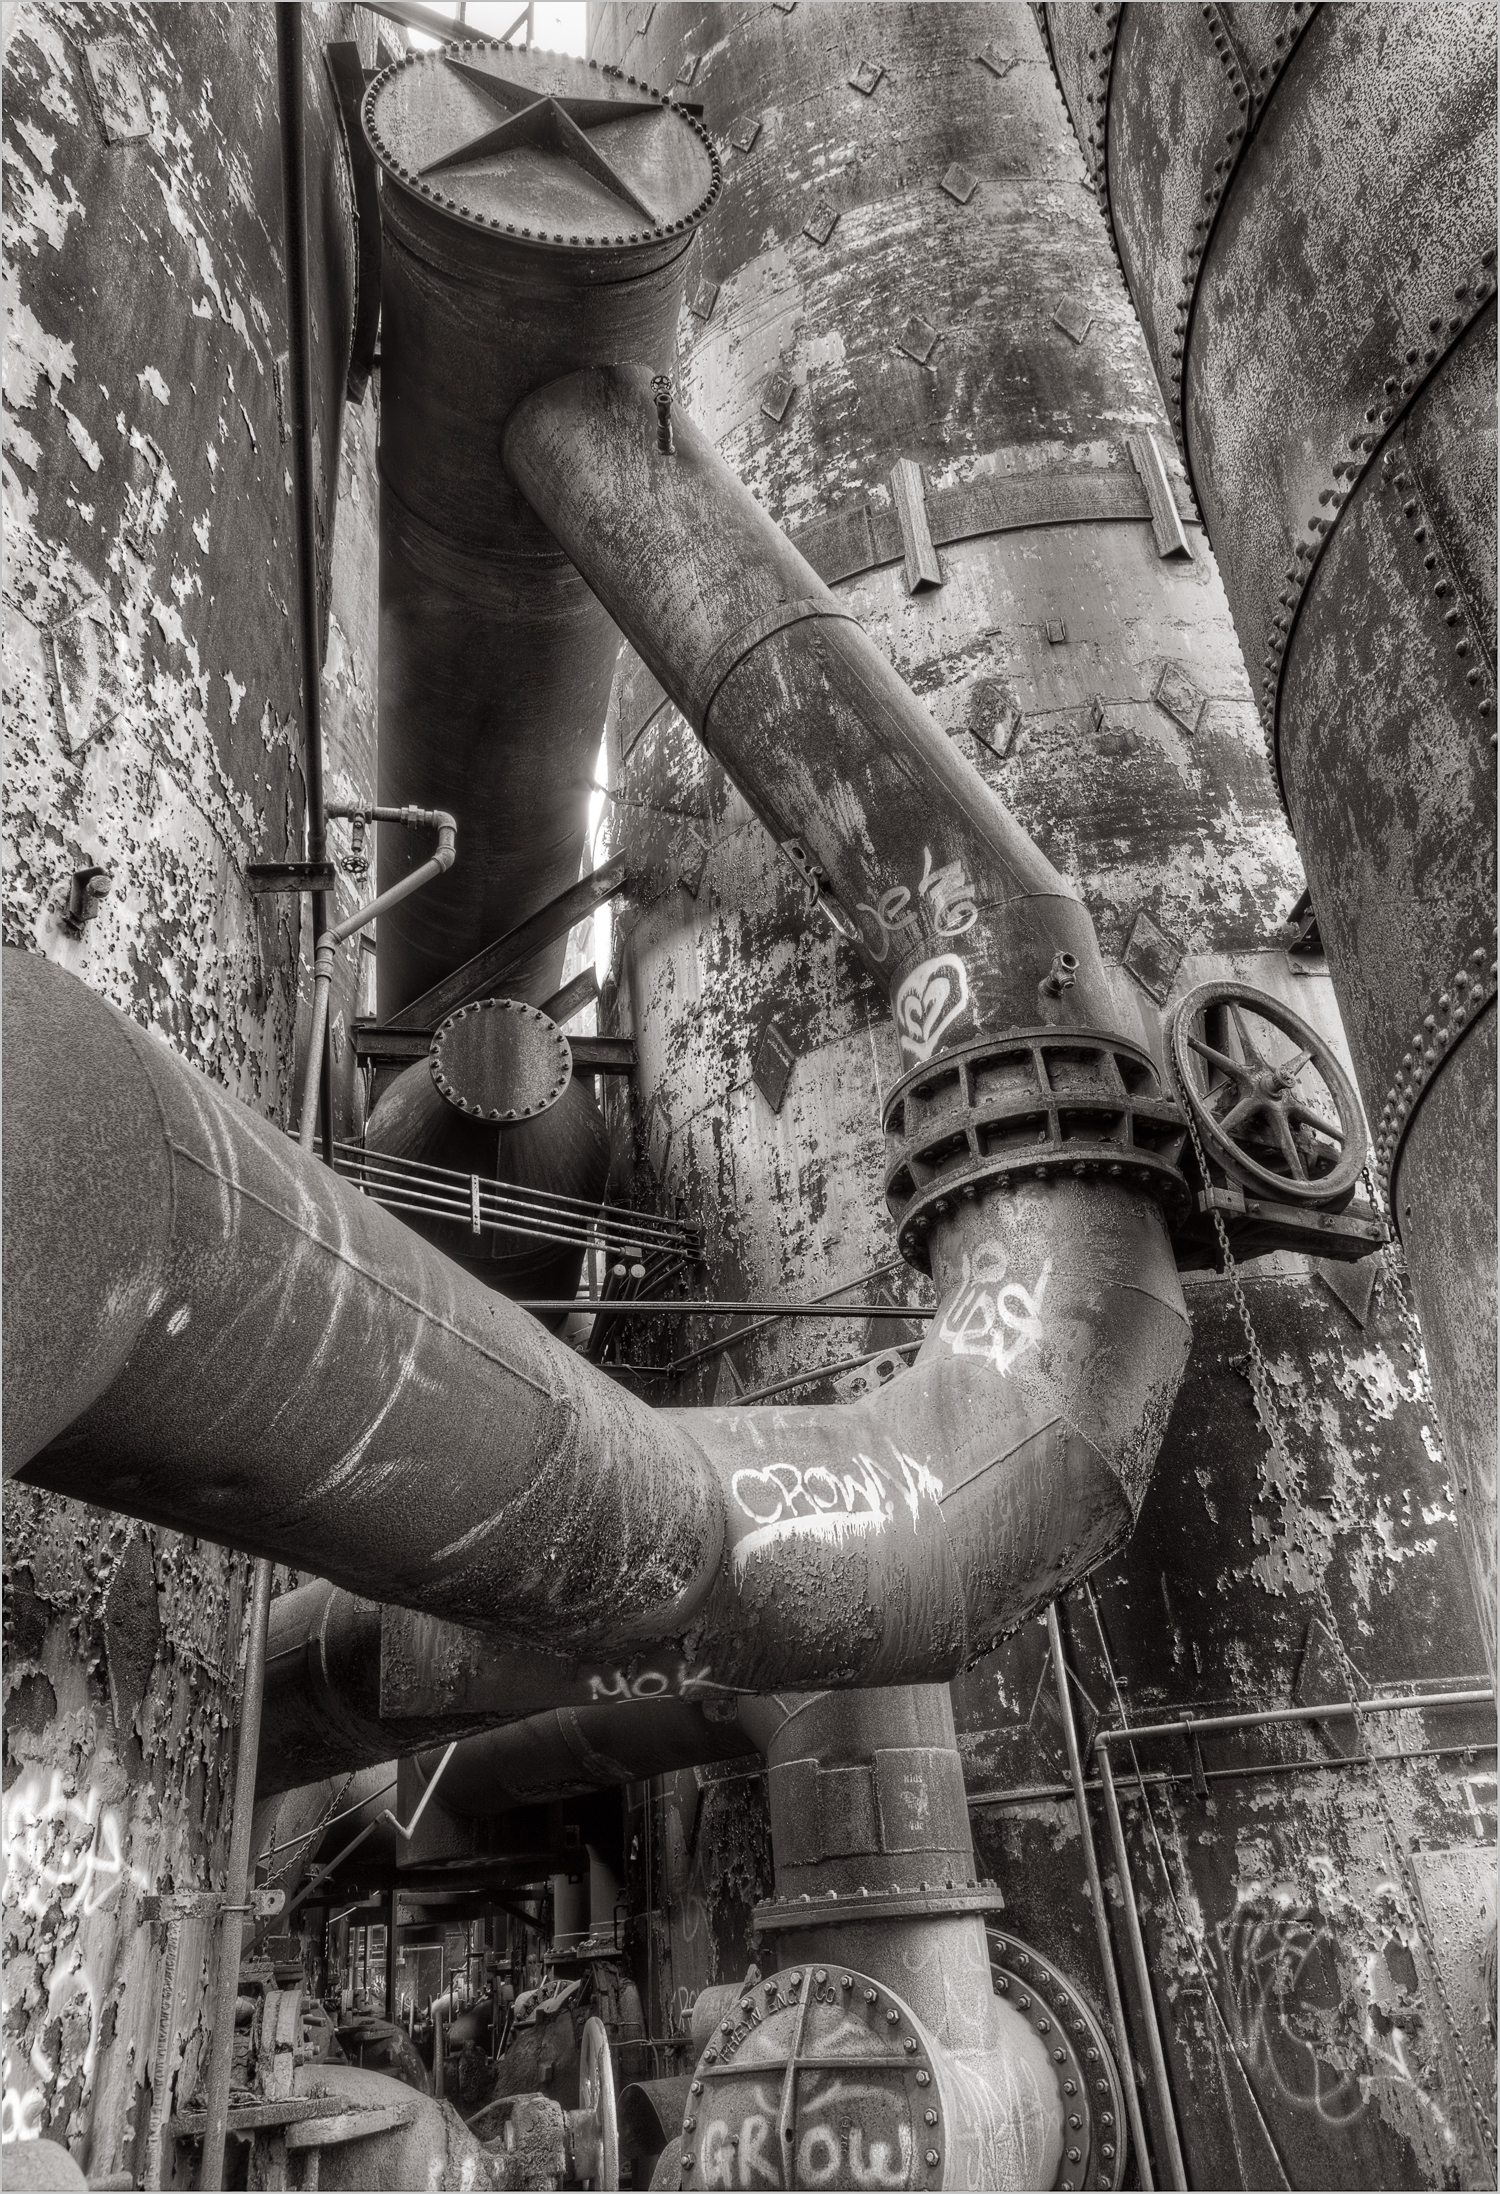 Massive pipes were used to draw air into the stoves at the Carrie Furnace.